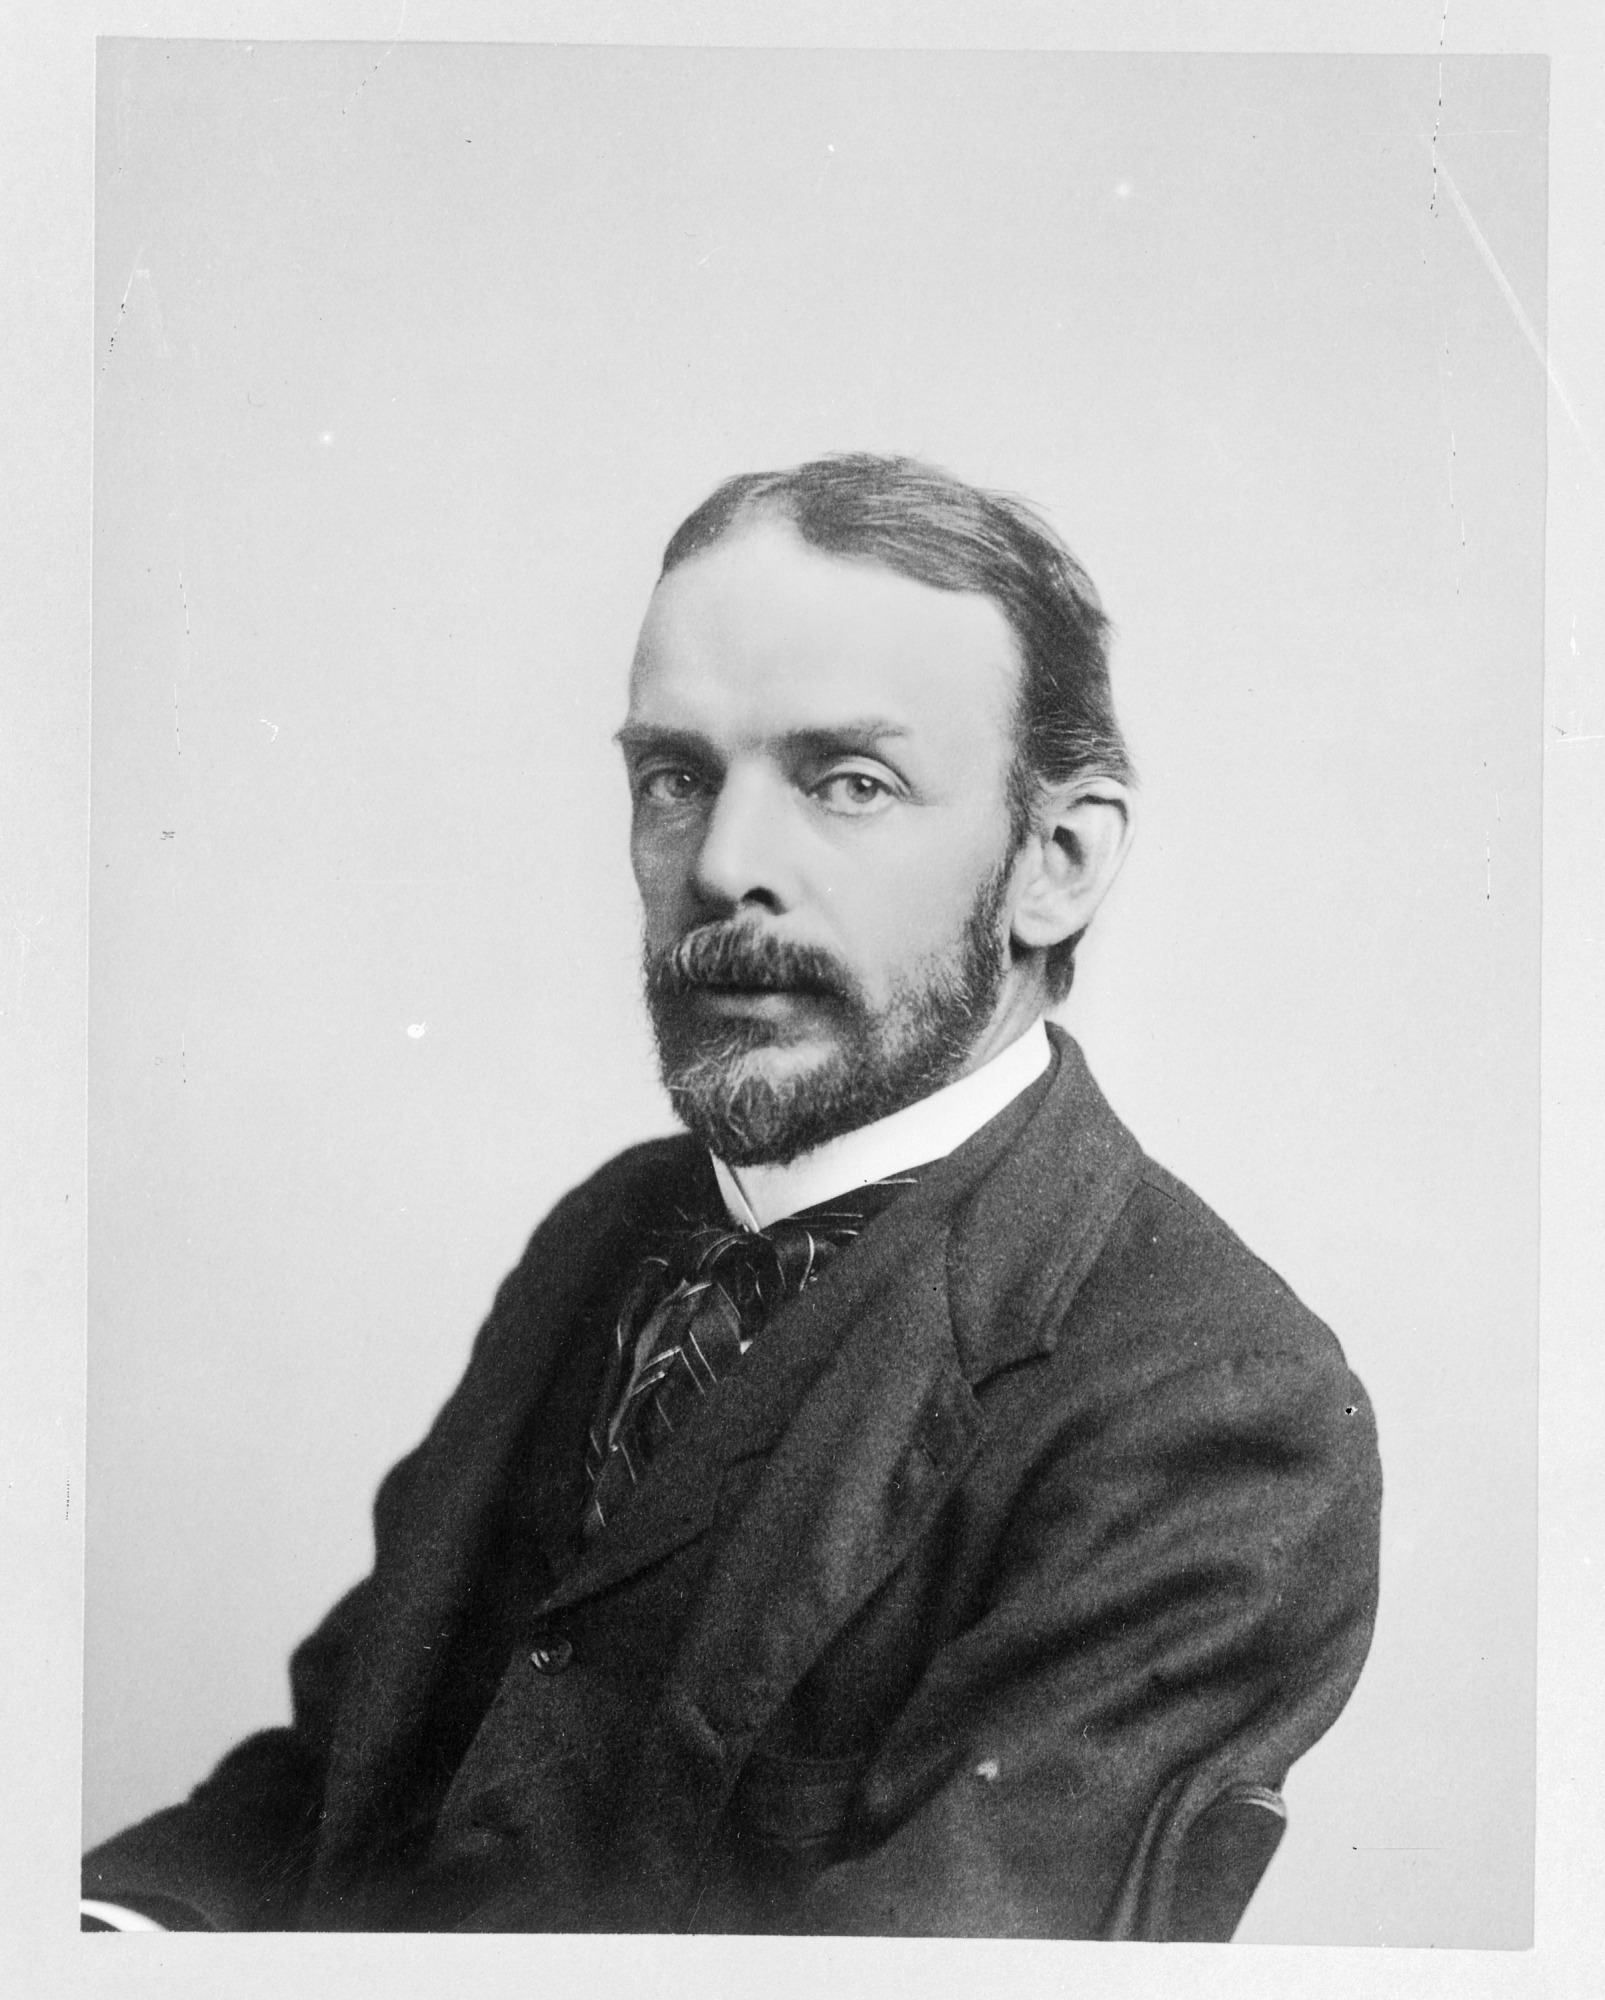 George Brown Goode, by Unknown, c. 1880s, Smithsonian Archives - History Div, 11776 or MAH-11776.